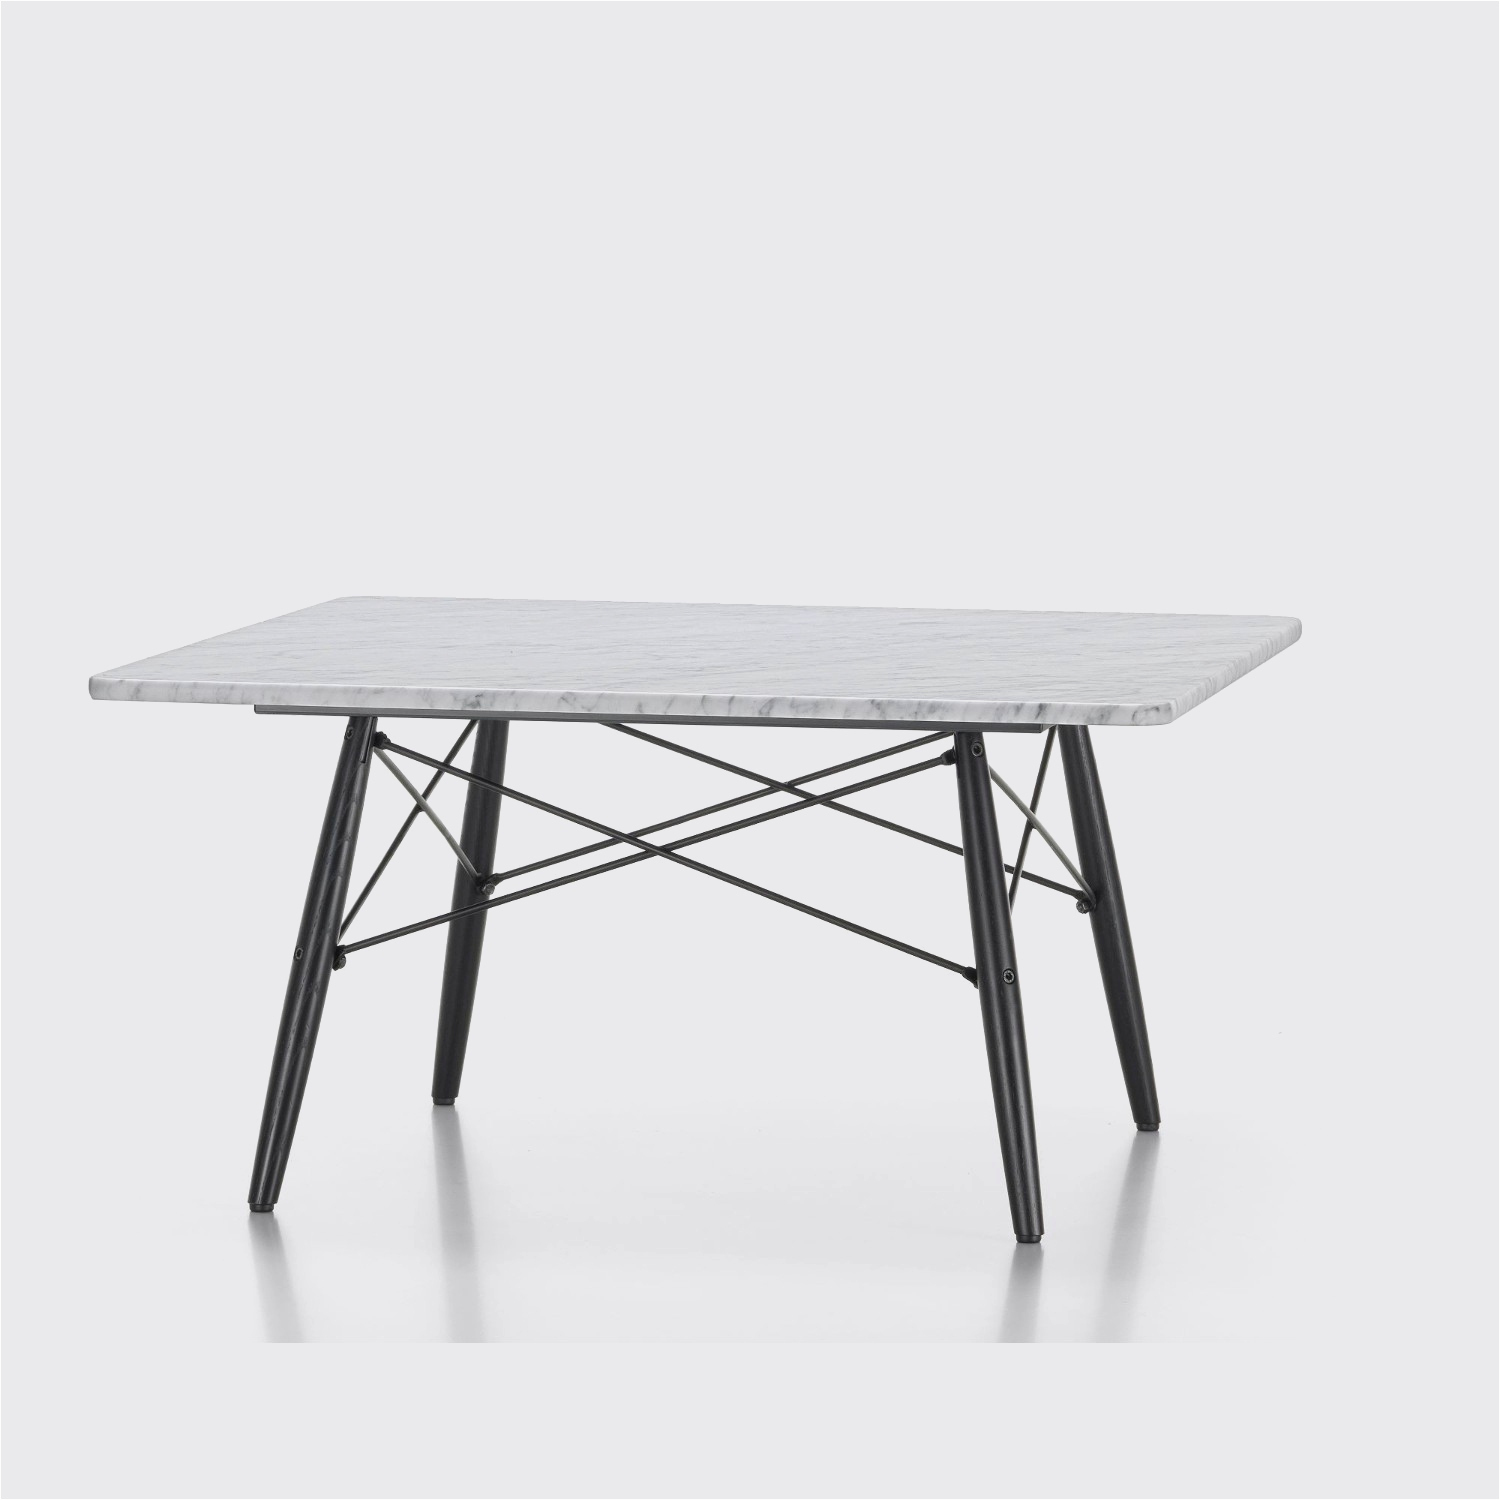 Camif Table Basse Frais Photographie Table Basse Marbre Design Beau Fantastiqué Table Basse Marbre Noir